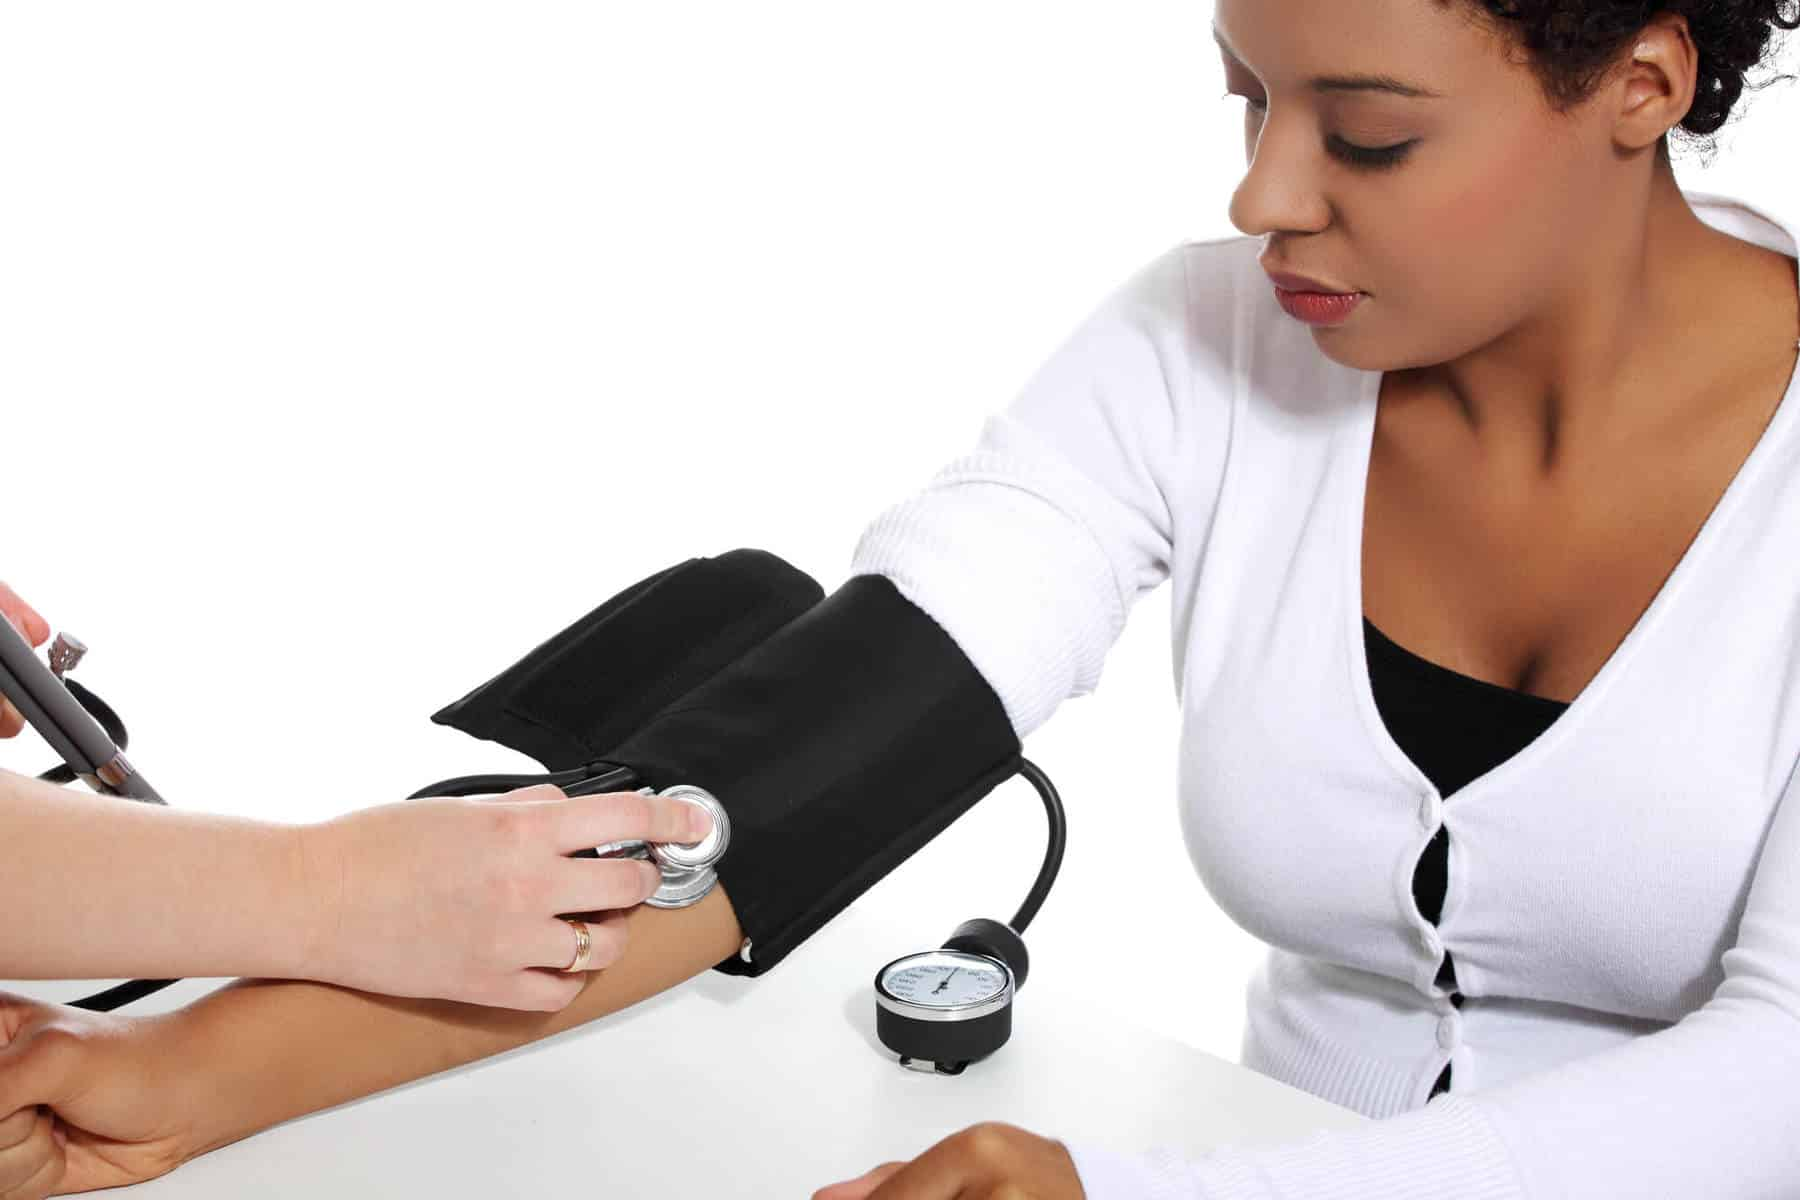 Doctor checking blood pressure of pregnant woman.